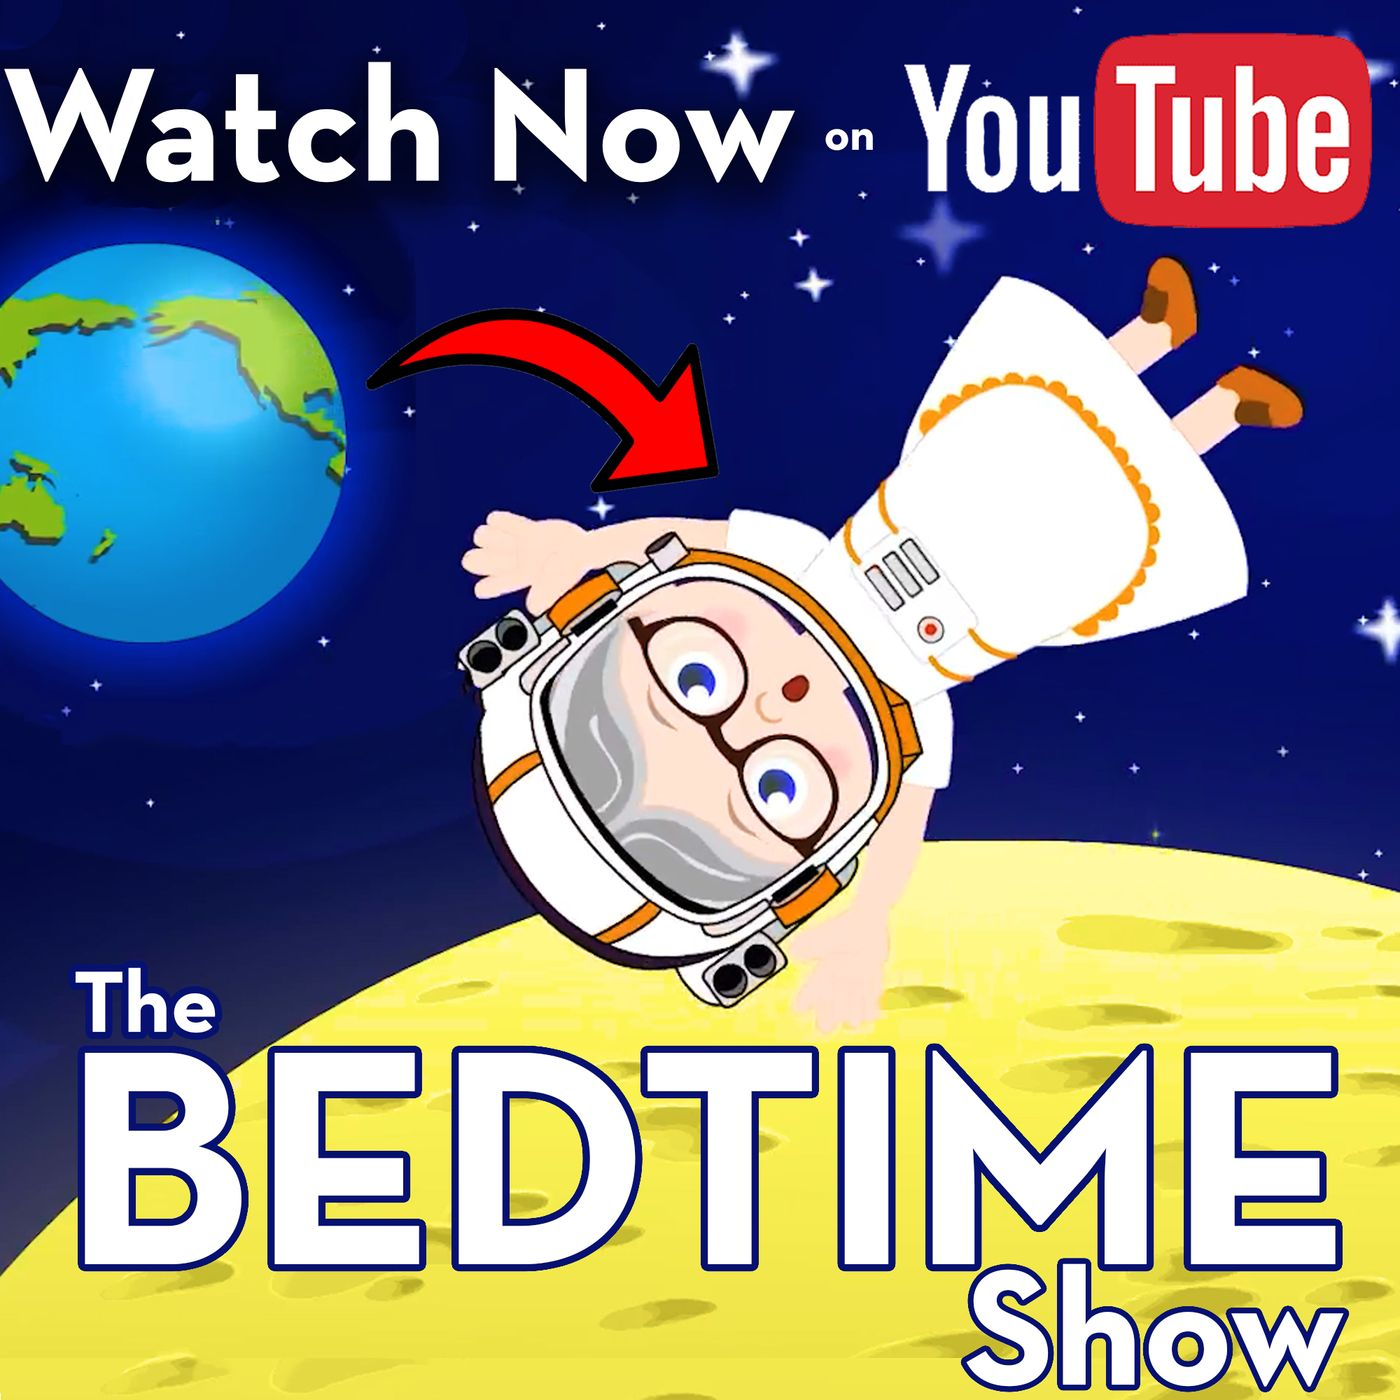 The Bedtime Show - Episode 1 - OUT NOW!